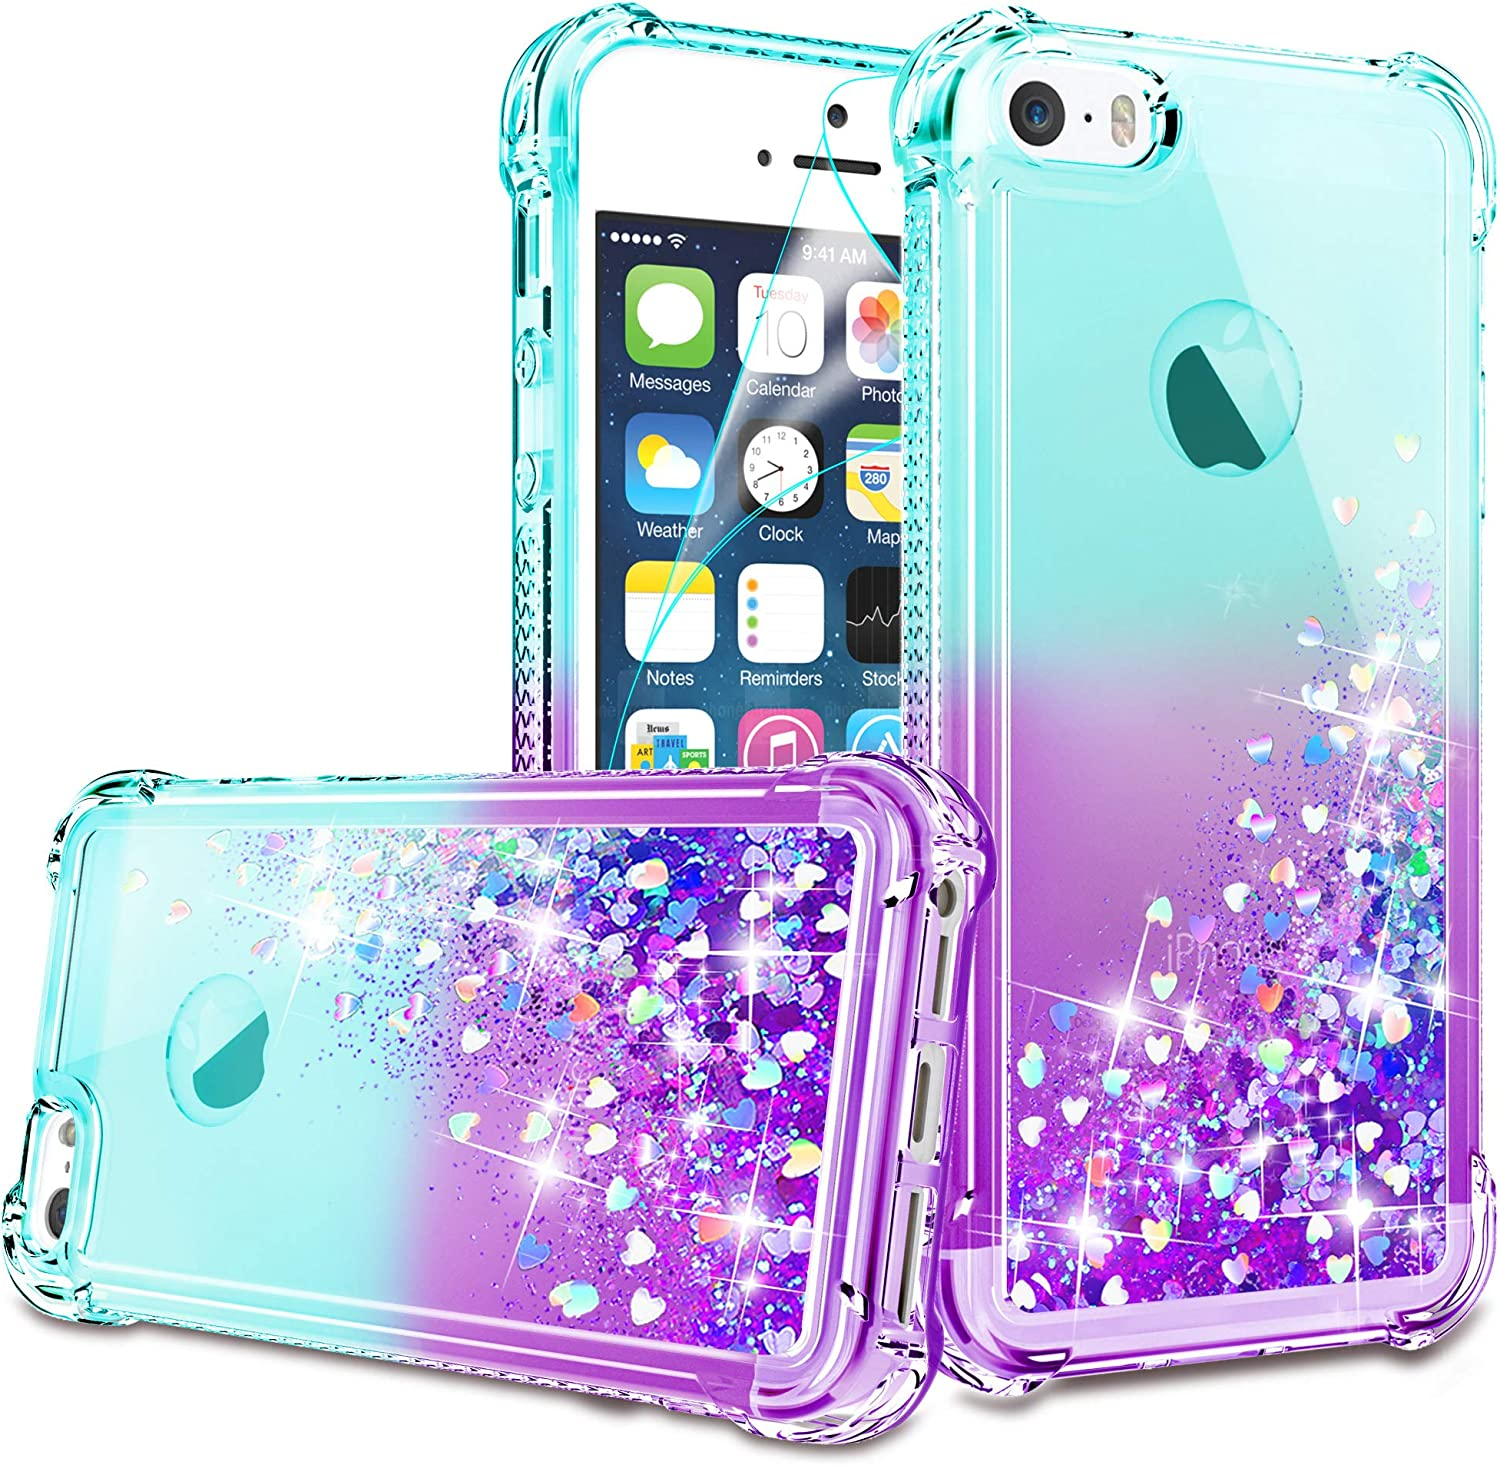 iPhone 5/iPhone 5S Case, iPhone SE Case with HD Screen Protector for Girls Women, Gritup Cute Clear Gradient Glitter Liquid TPU Slim Phone Case for Apple iPhone 5/5S/SE Teal/Purple